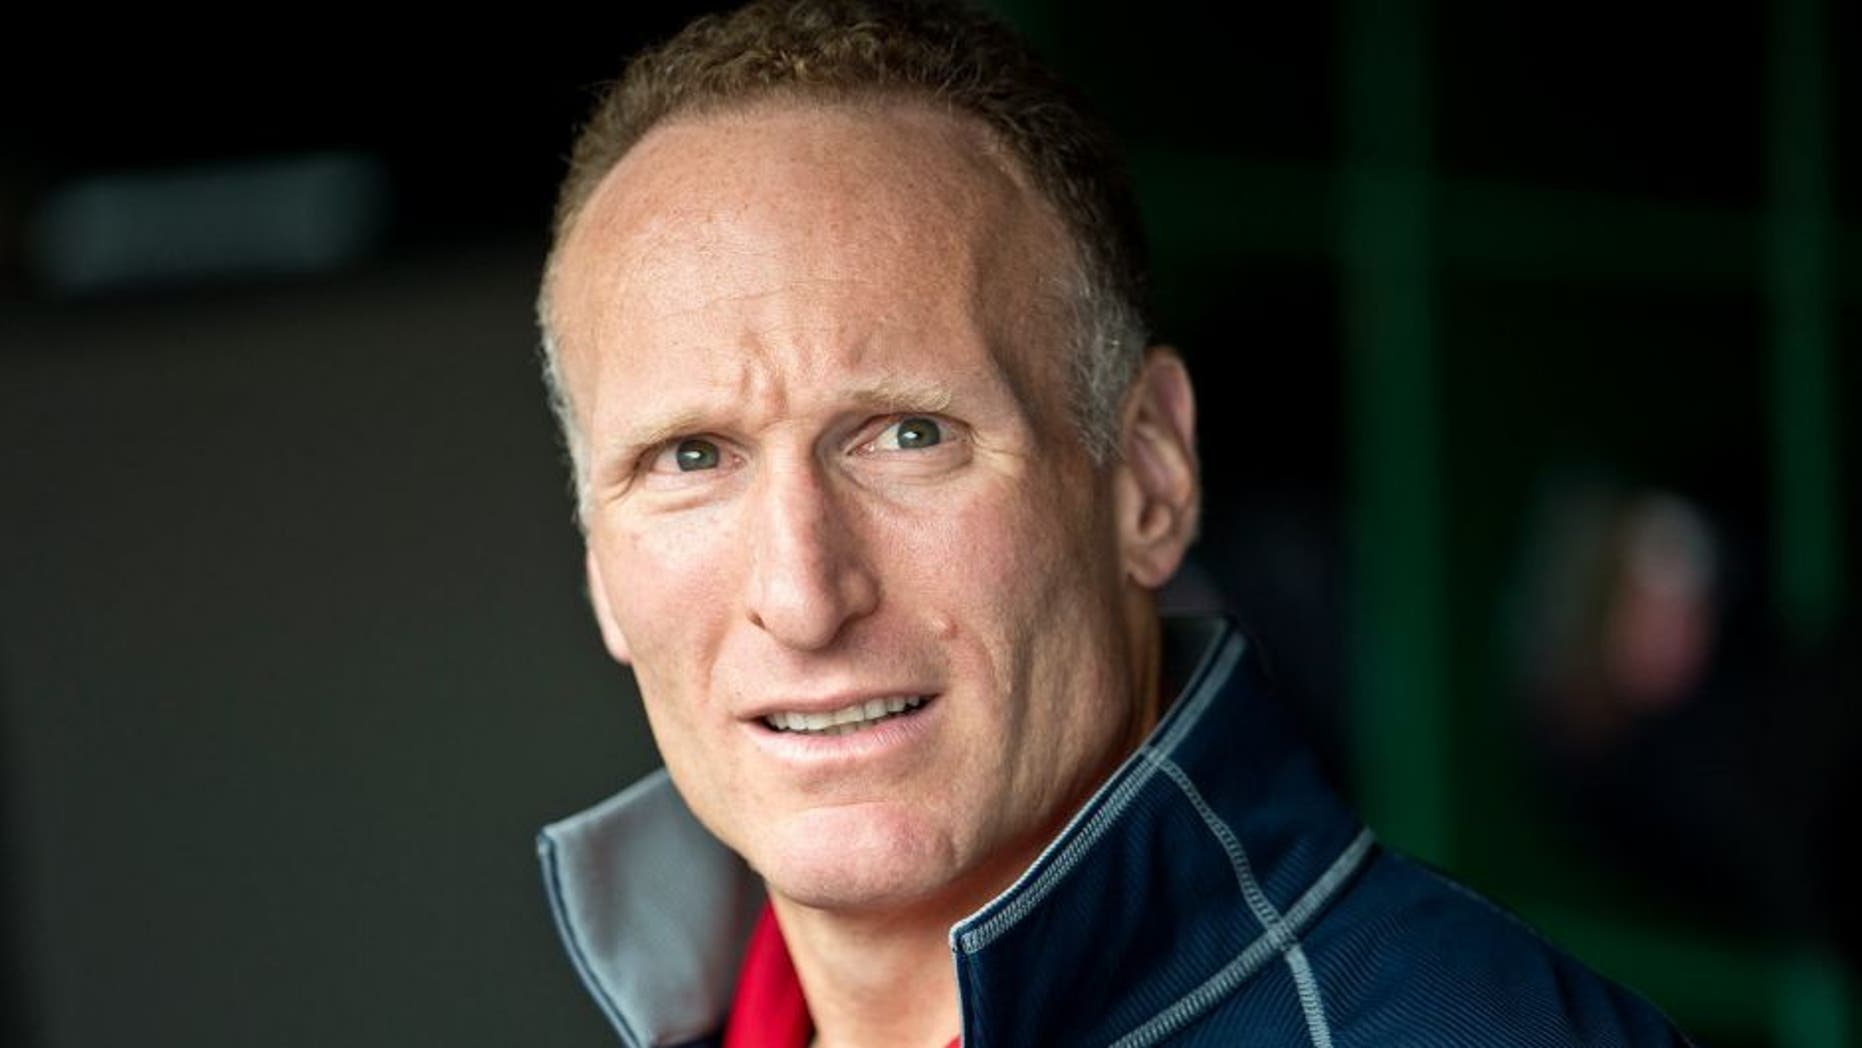 CLEVELAND, OH - JULY 10: President of the Cleveland Indians Mark Shapiro in the dugout prior to the game against the Toronto Blue Jays at Progressive Field on July 10, 2013 in Cleveland, Ohio. (Photo by Jason Miller/Getty Images)